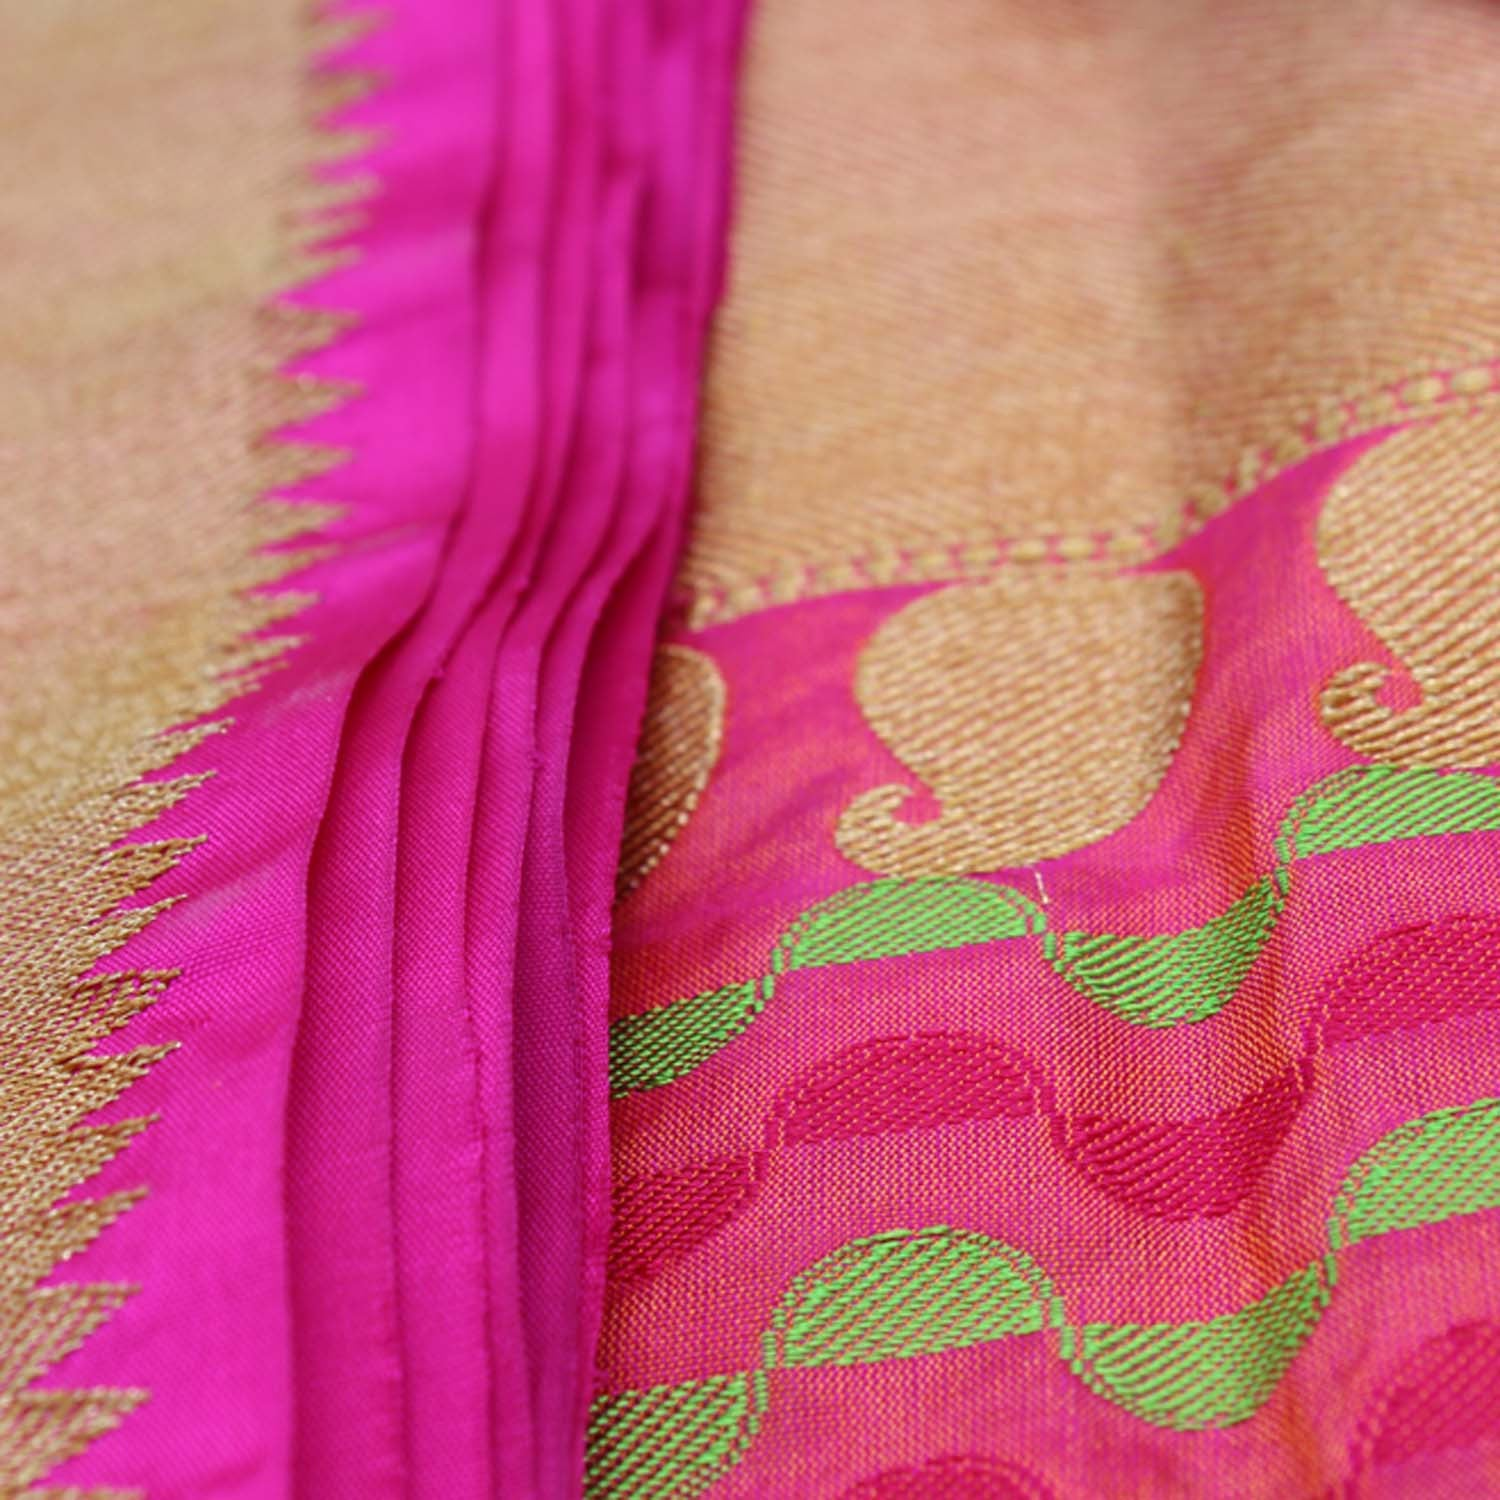 Indian Pink-Orange Pure Katan Silk Banarasi Handloom Saree - Tilfi - 5